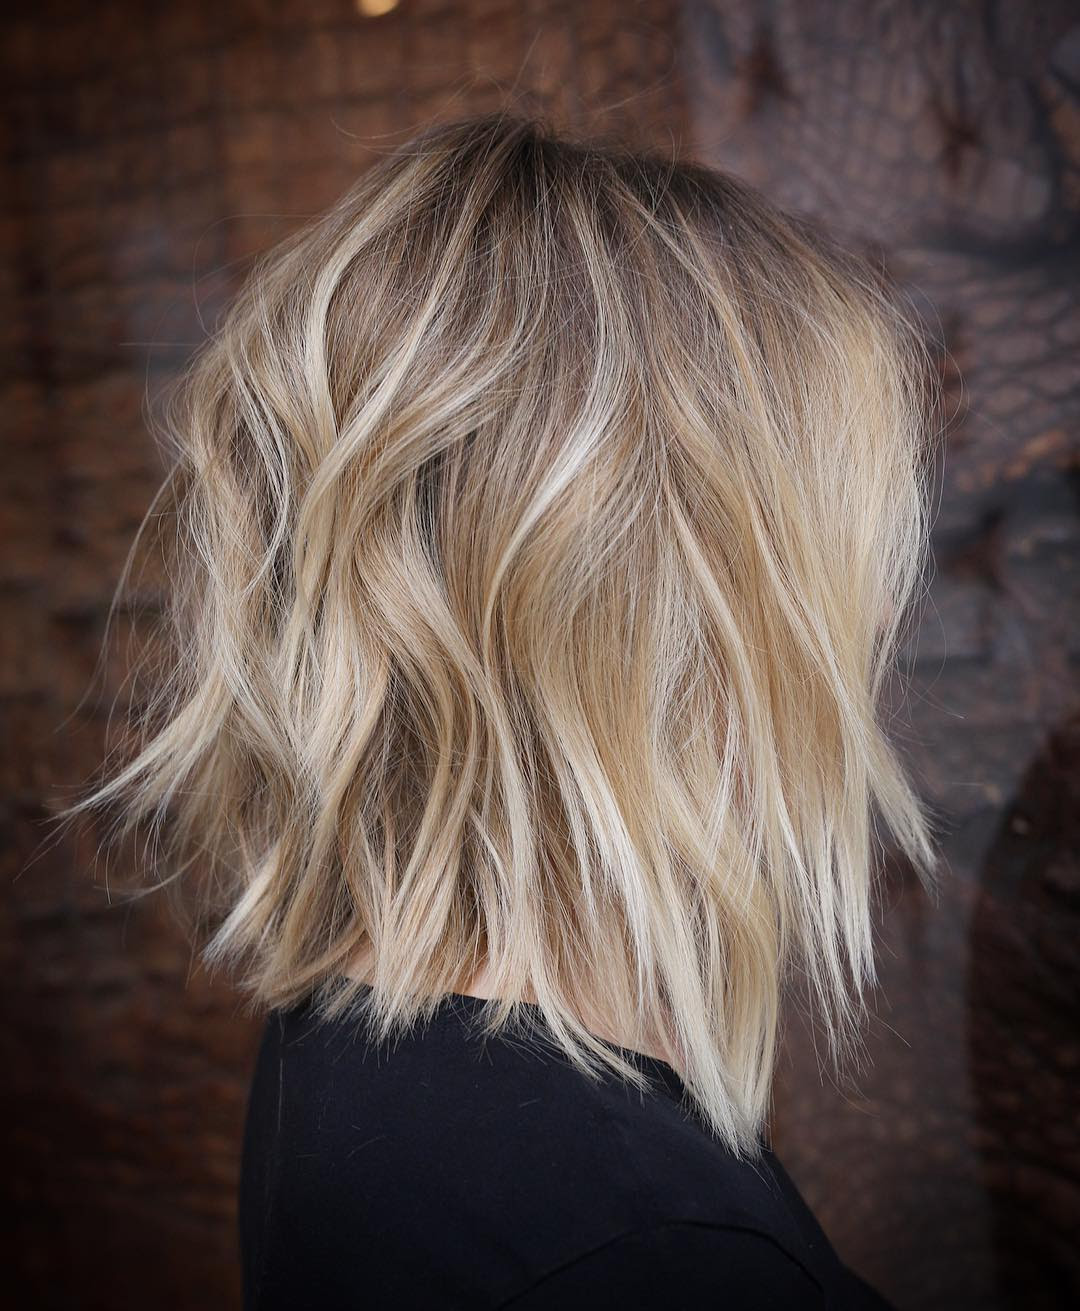 10 Stylish Lob Hairstyle Ideas Best Shoulder Length Hair For Women 2019